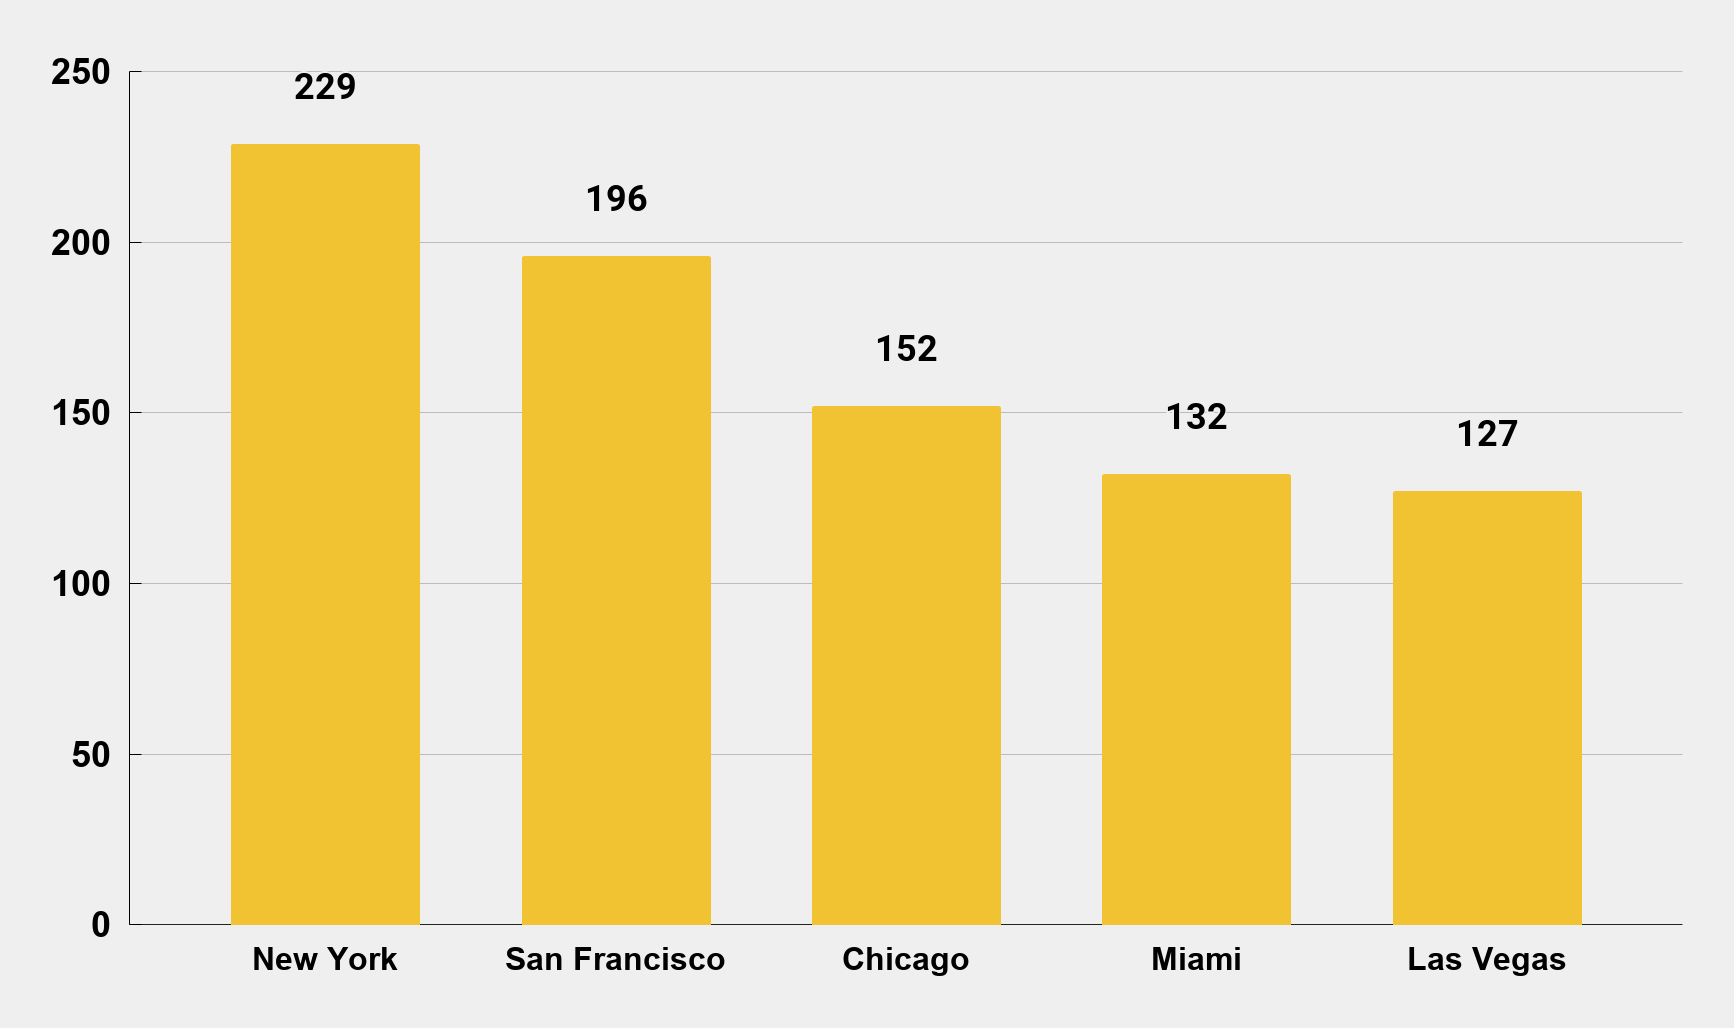 Selected Cities With the Most Expensive Hotel Rates in the USA as of Nov. 2019 (In USD)